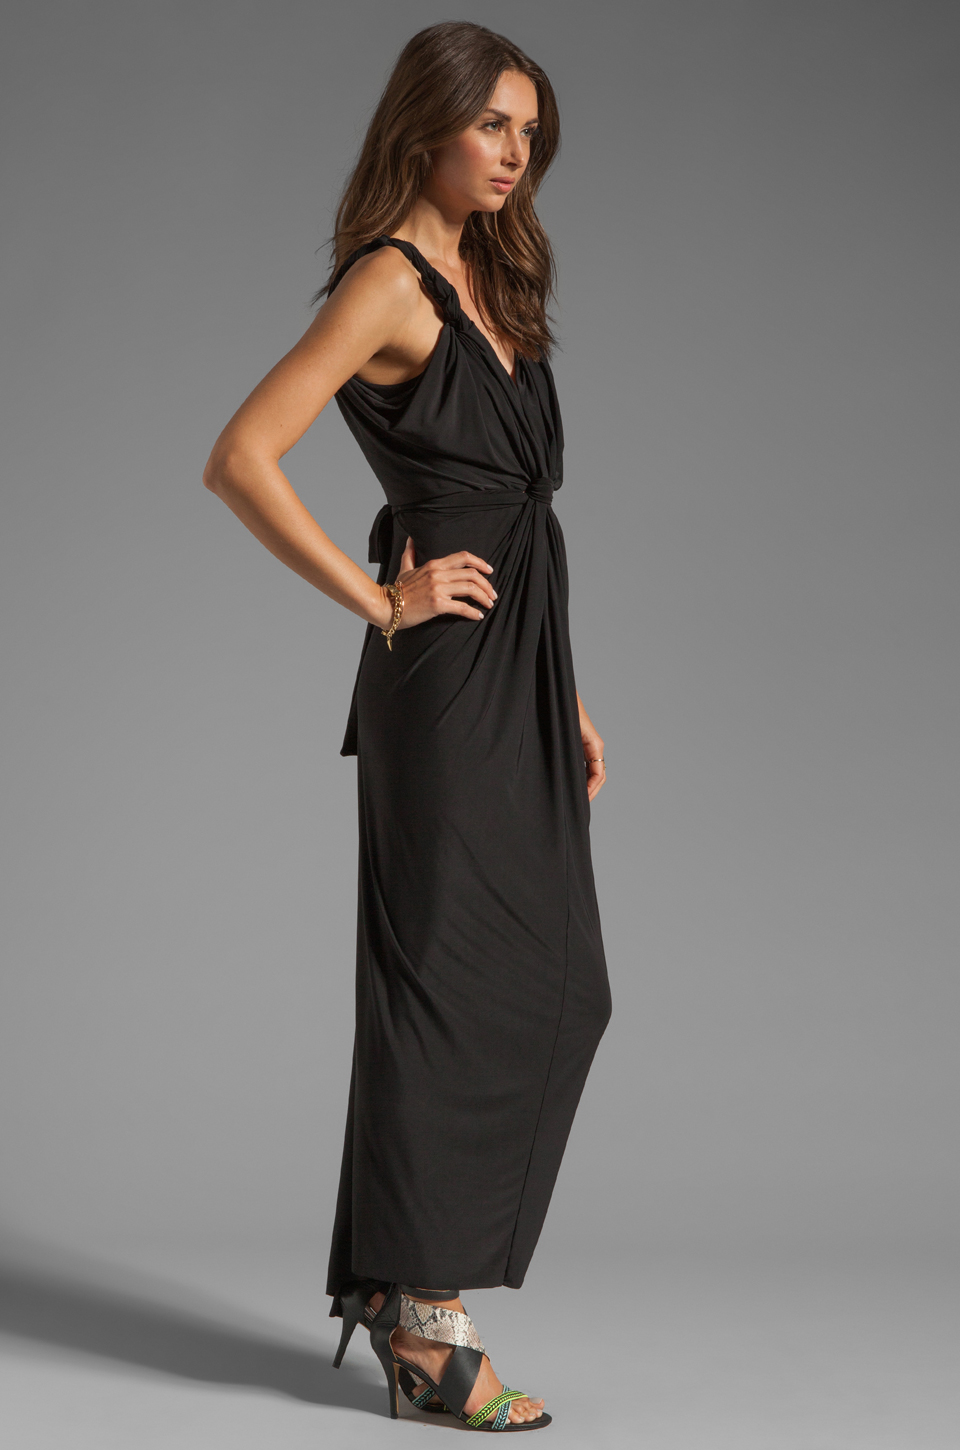 T-Bags LosAngeles Drape Front Maxi Dress in Black